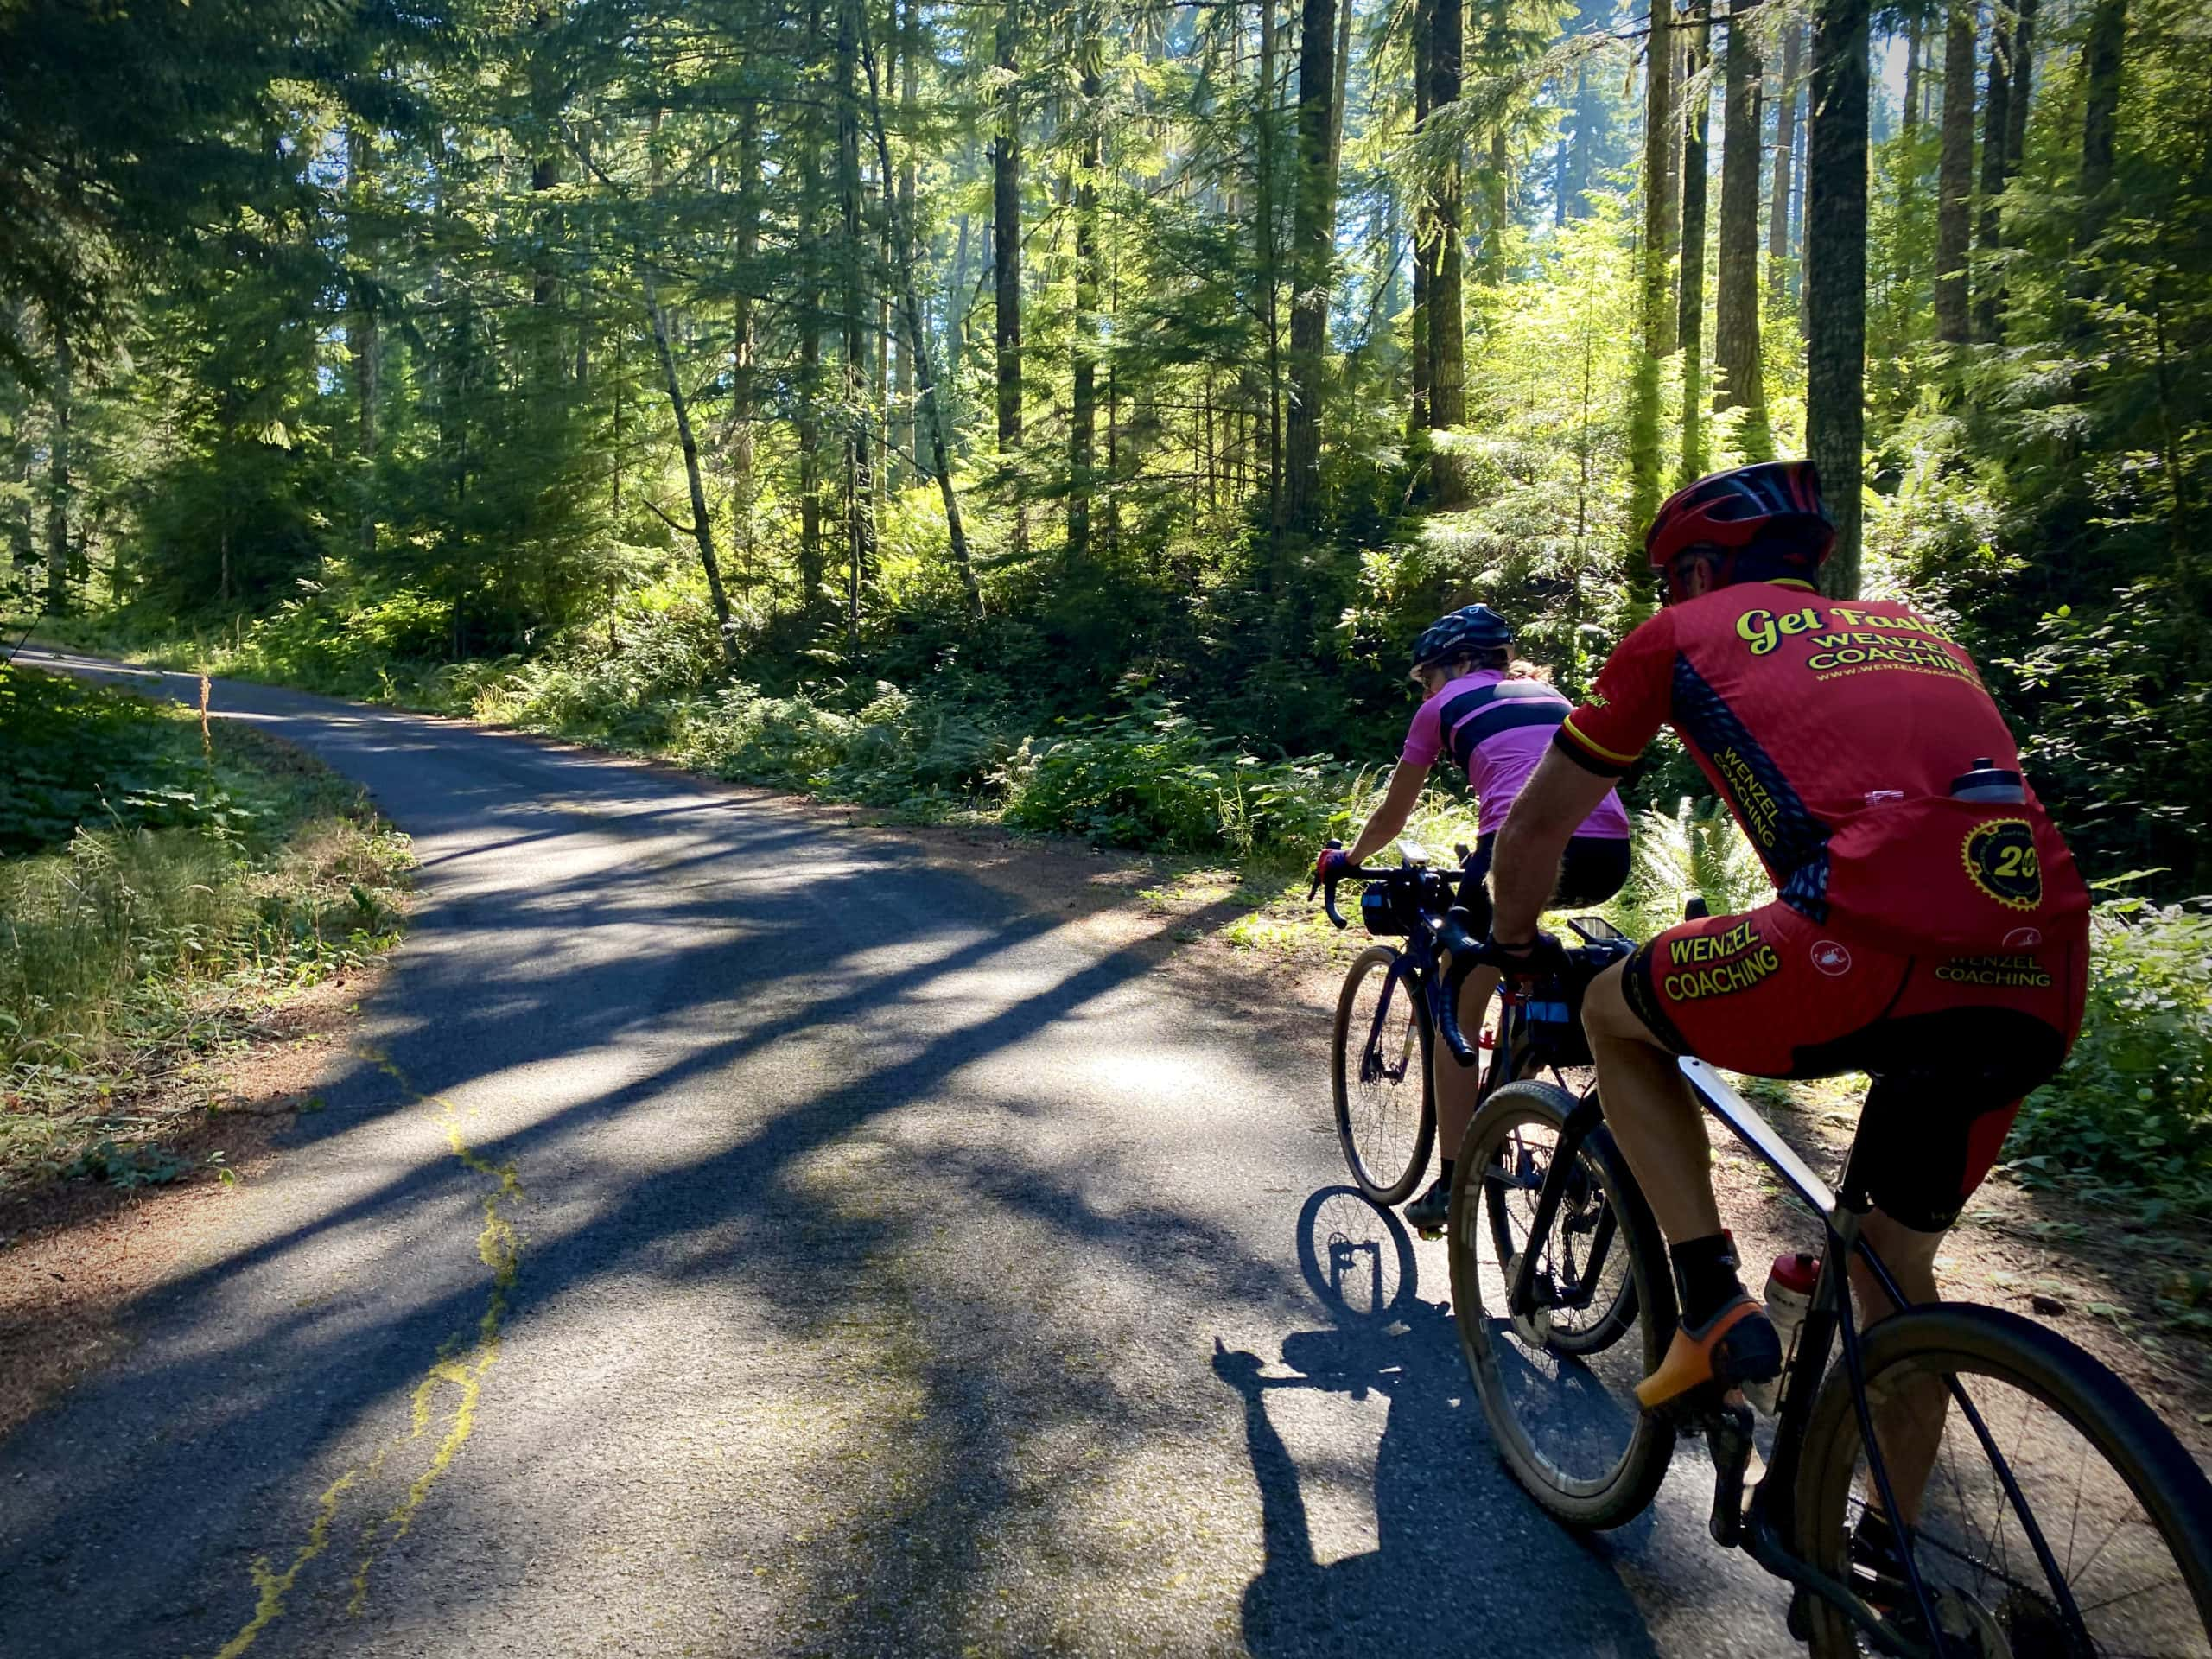 Cyclists climbing NF 1746 in the cover of shaded trees.